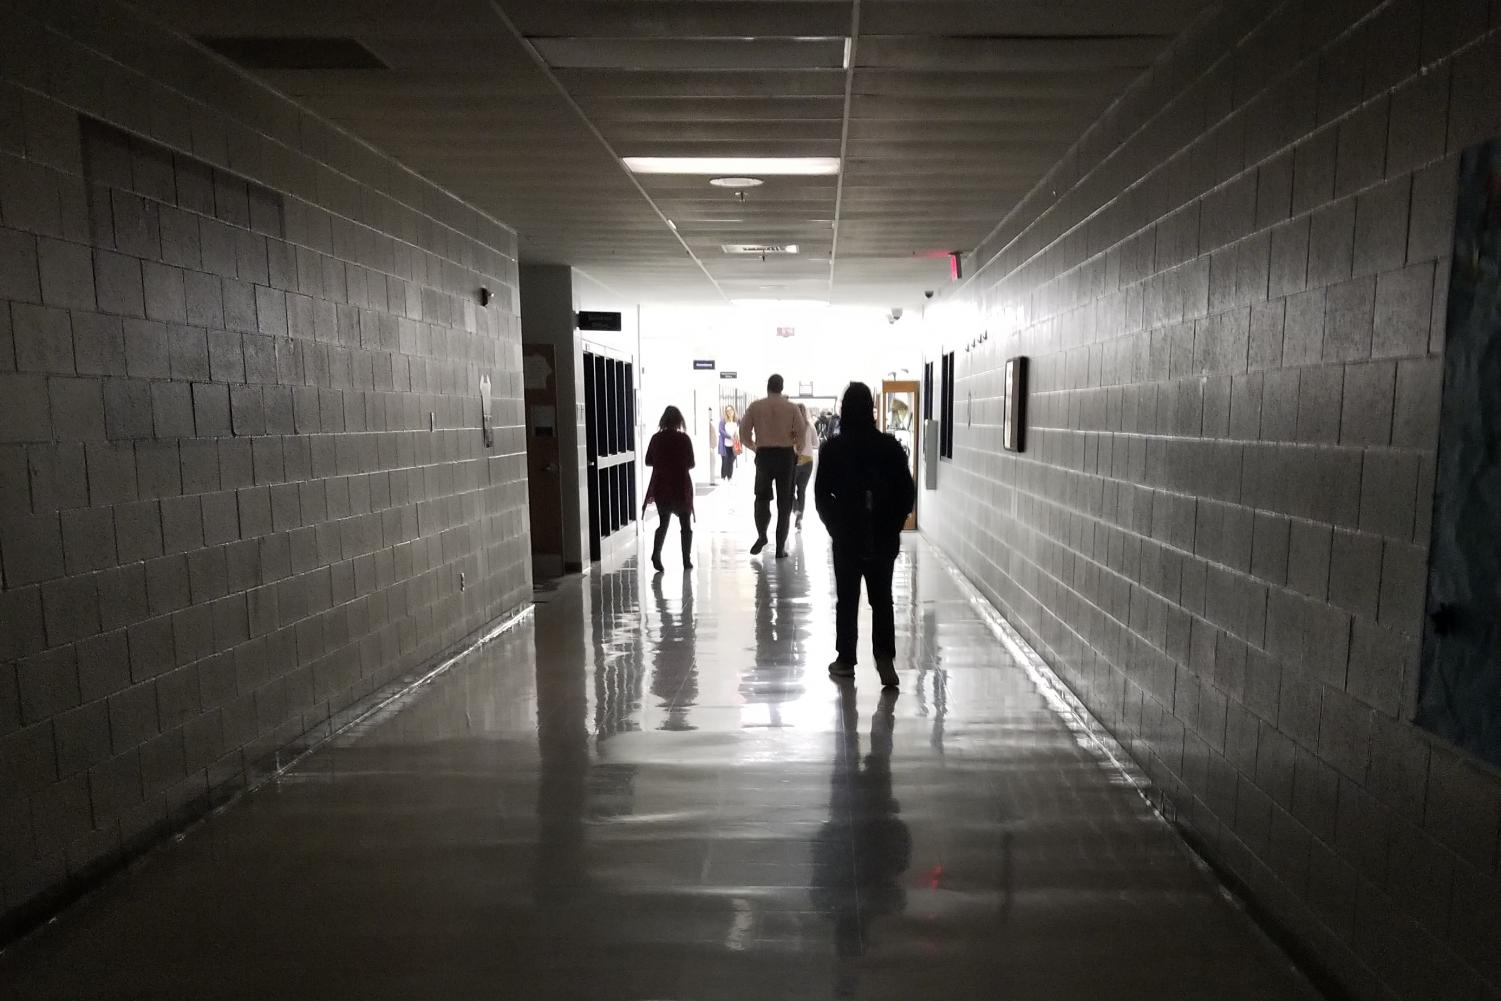 Students and staff walk towards the lit wing of the school. The power outage had only impacted the classroom side of the school, so students were guided to the gym to wait for instructions.